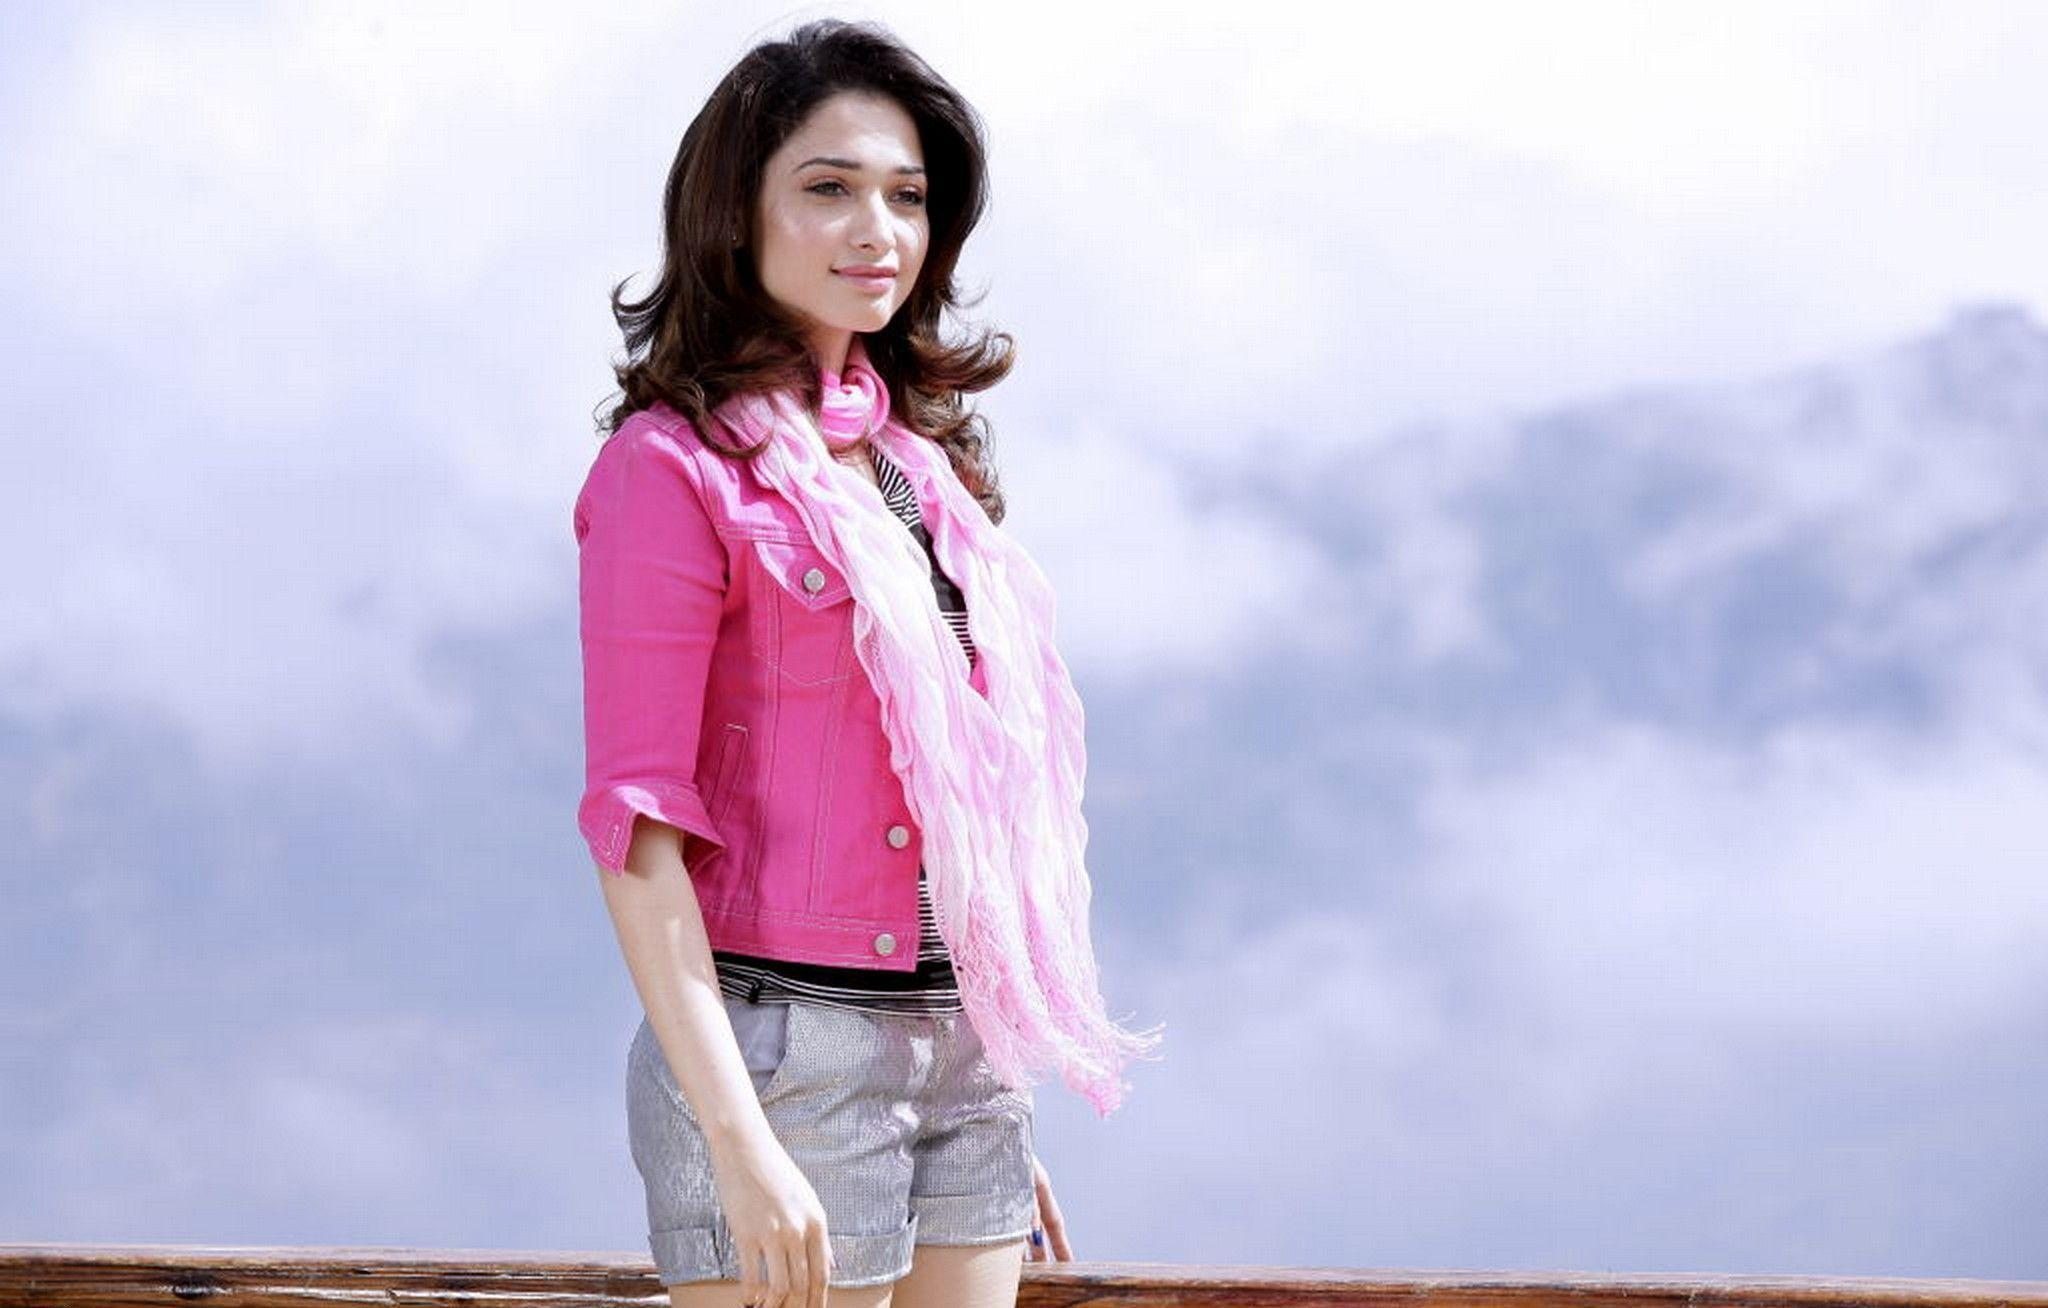 Glamours Tamanna bhatia HD wallpaper for download